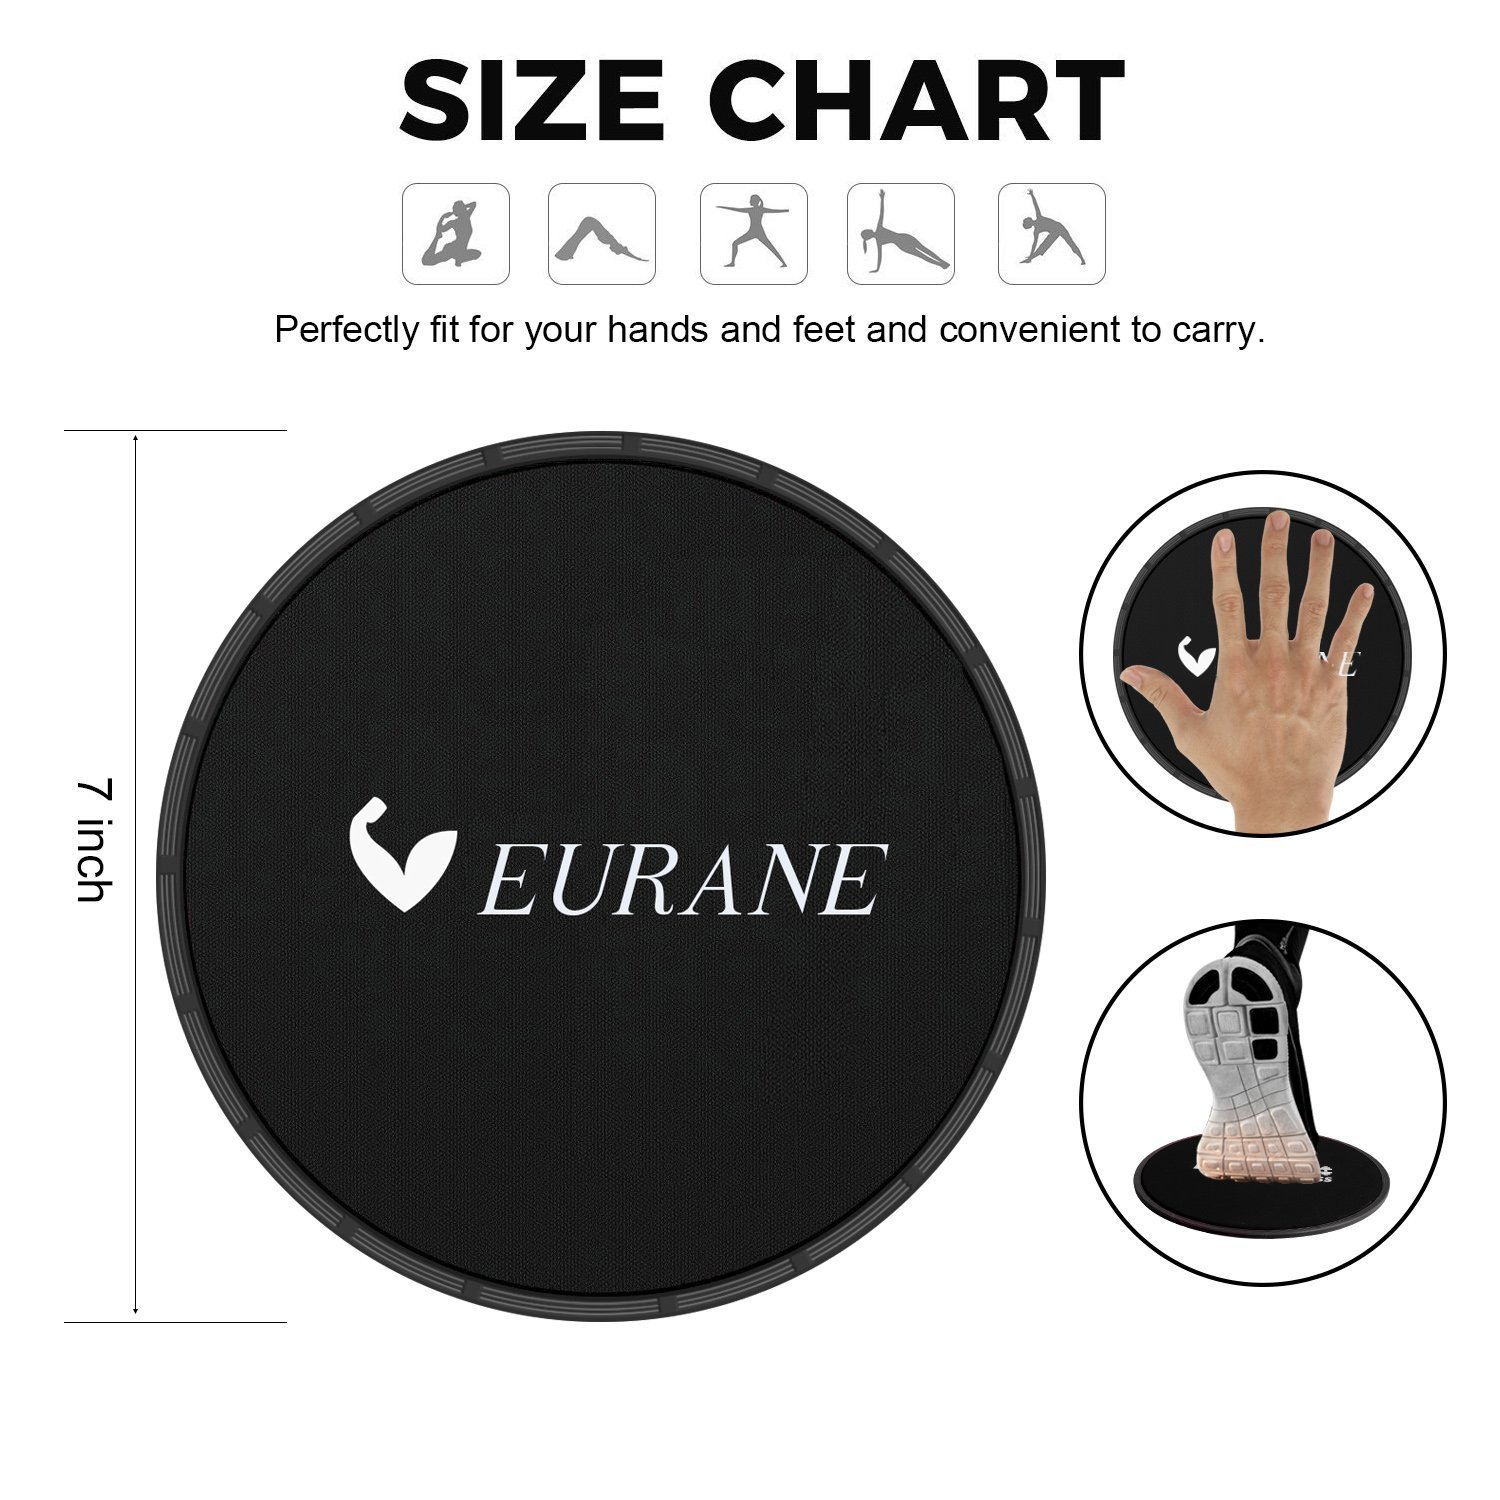 EURANE Set of 4 Gliding Discs Sliders Exercise Core, Dual Sided for Carpet or Hardwood Floors - Trainer Fitness Equipment for Abdominal, Total Body Workouts by EURANE (Image #2)